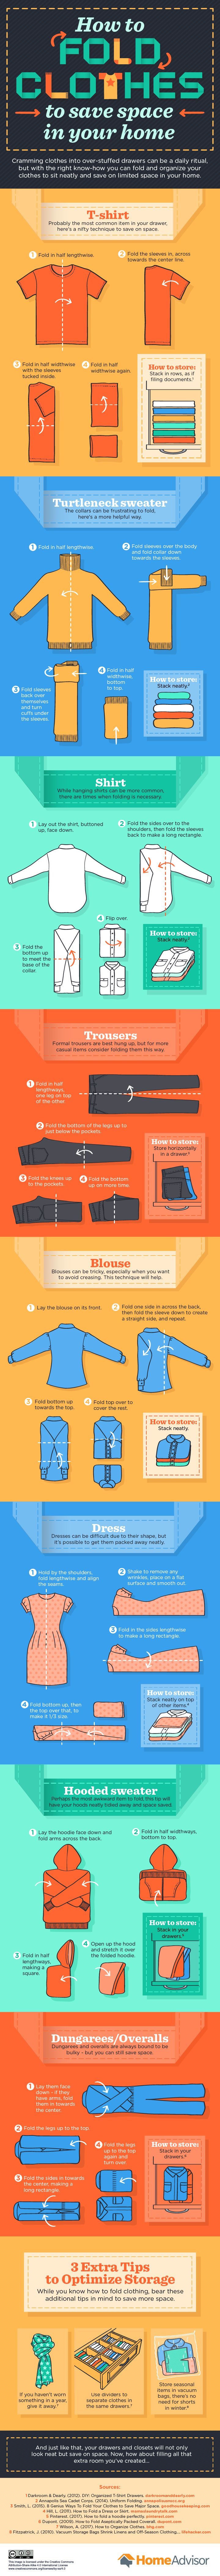 How to Fold Clothes to Save Space #Infographic #Clothes